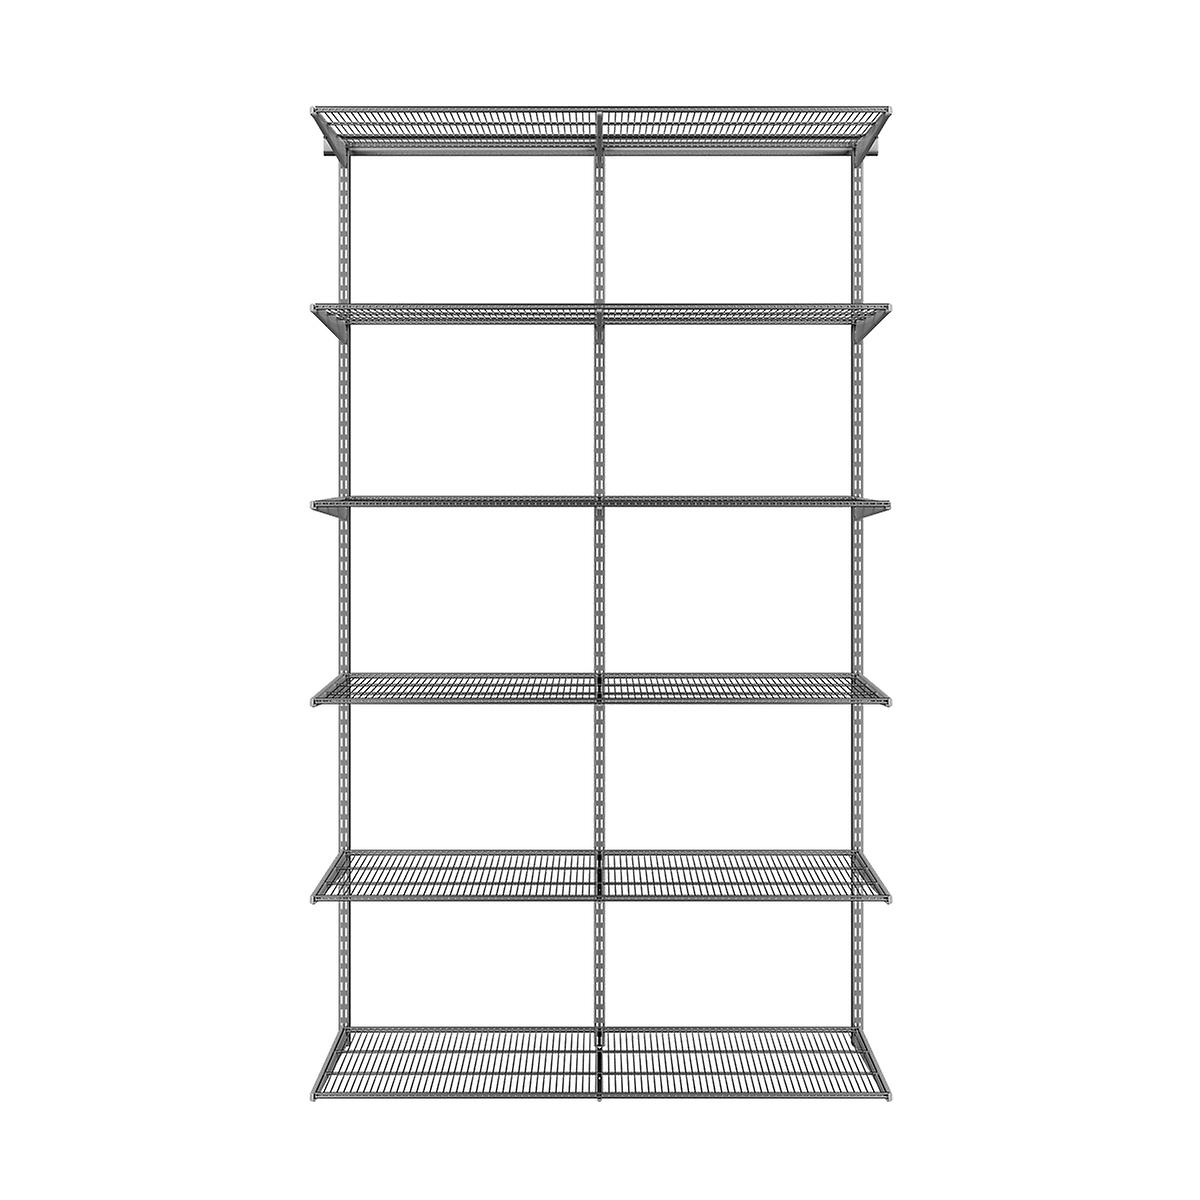 Elfa Classic Platinum Ventilated Shelving Solution